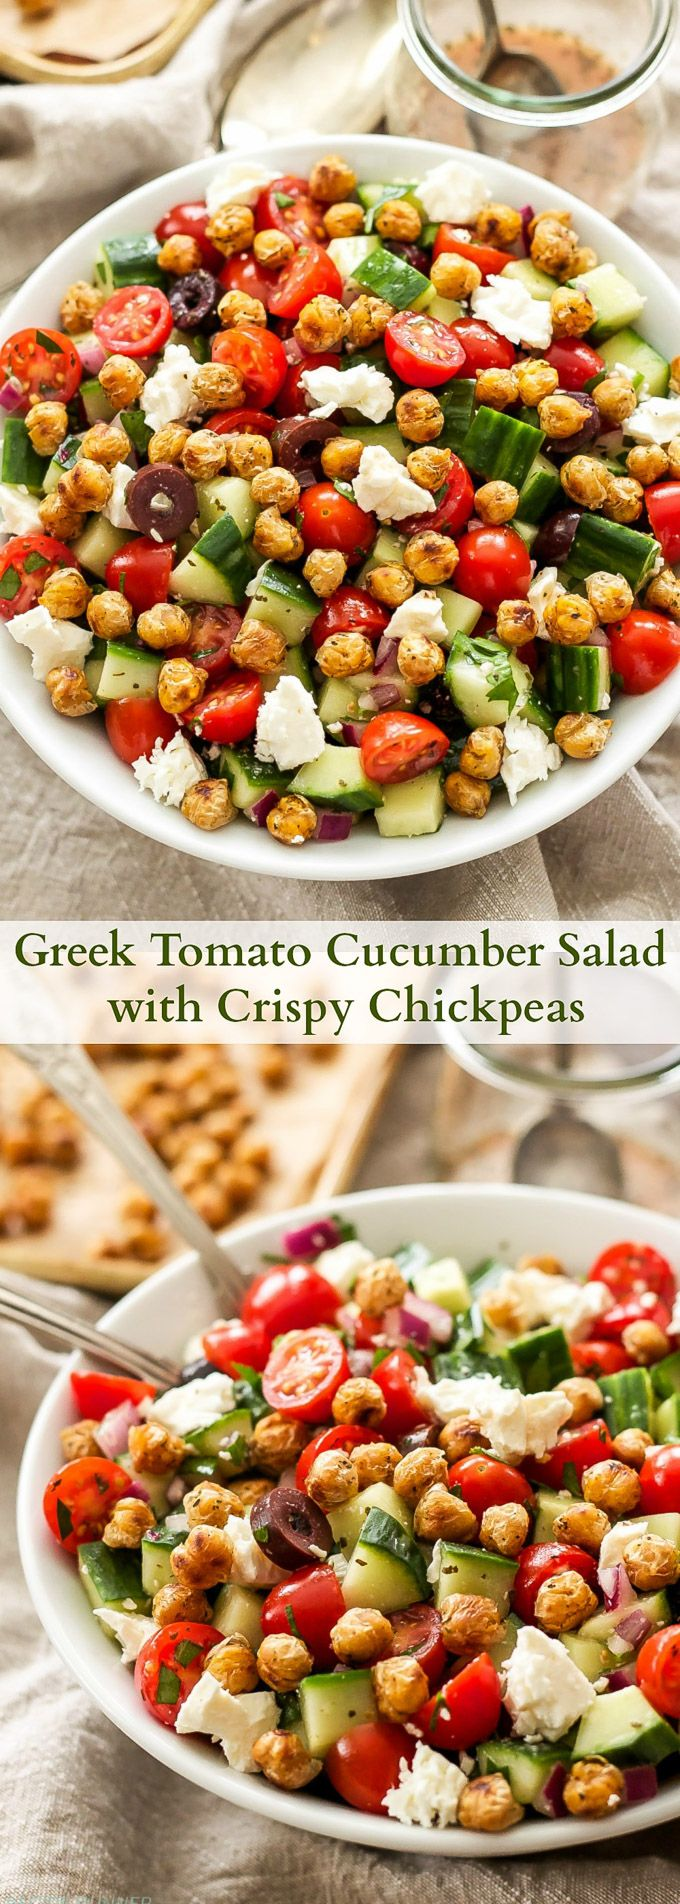 Greek Tomato Cucumber Salad with Crispy Chickpeas | Crispy pan sauteed chickpeas…